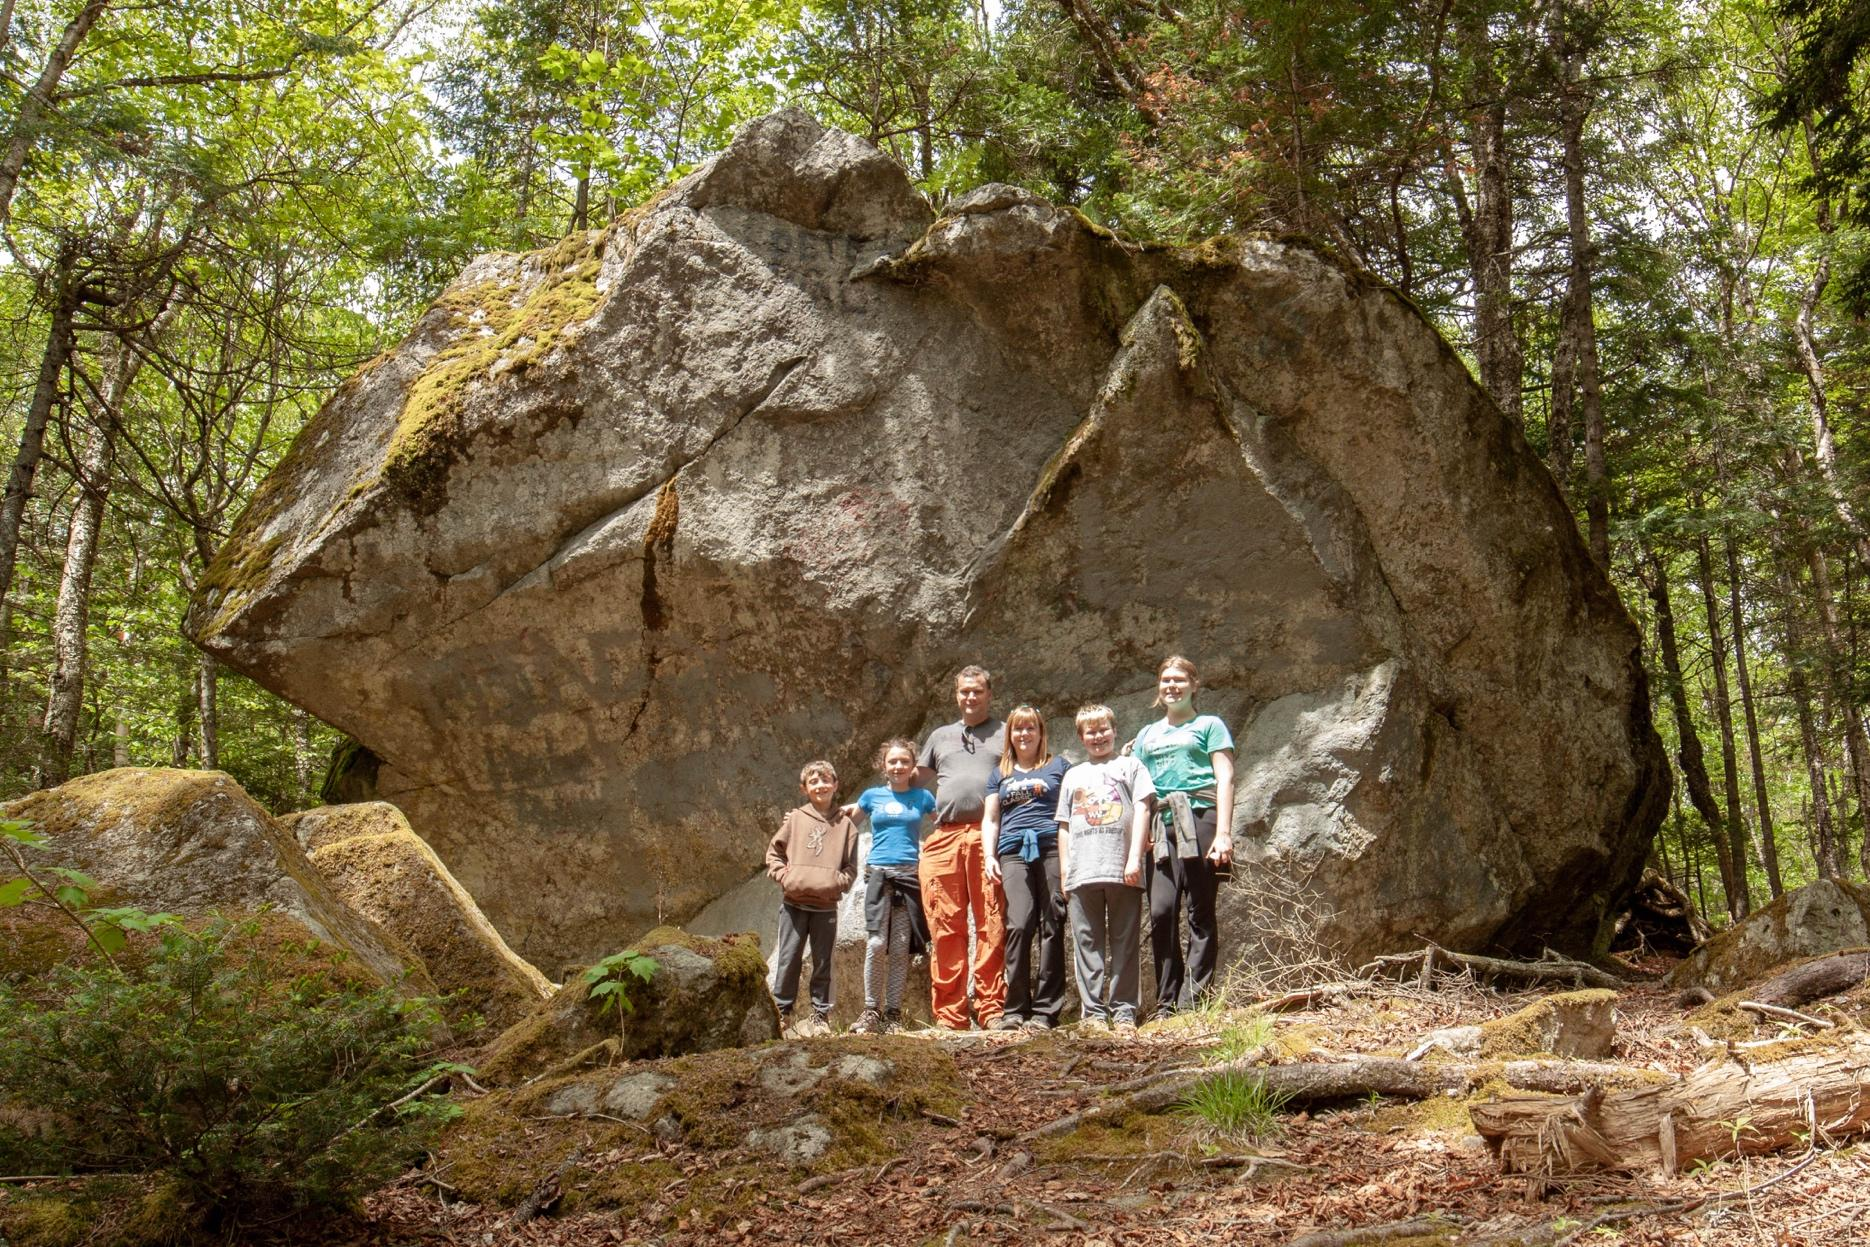 A group of people standing next to a large rockDescription automatically generated with medium confidence